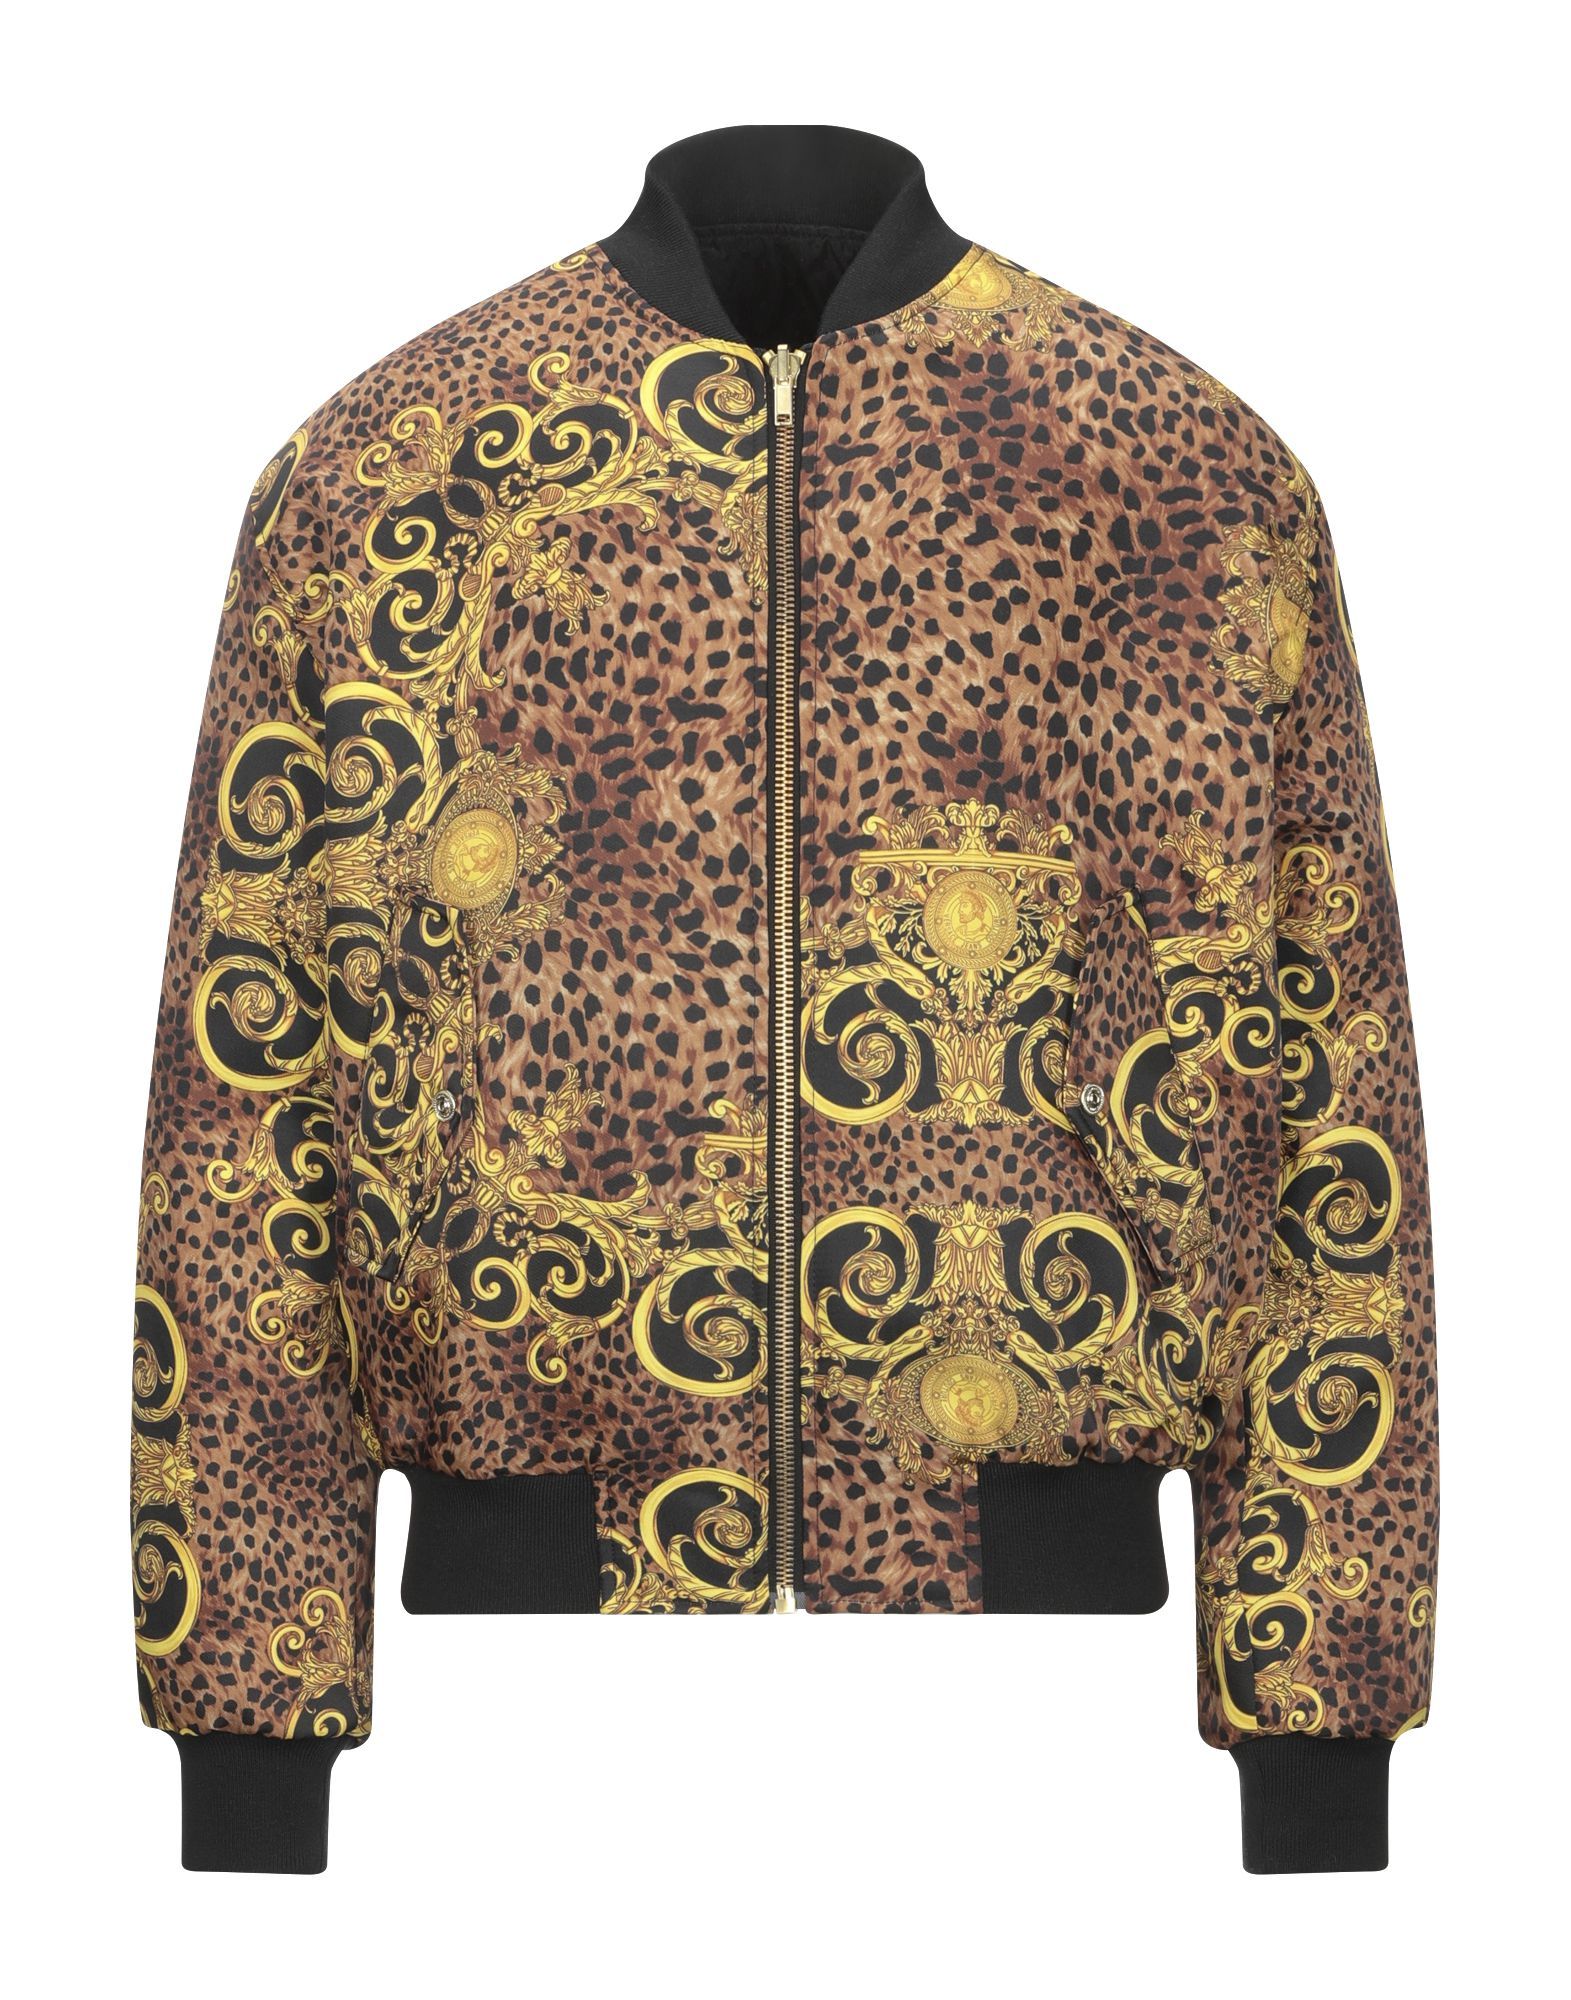 VERSACE JEANS COUTURE Synthetic Down Jackets - Item 41982105